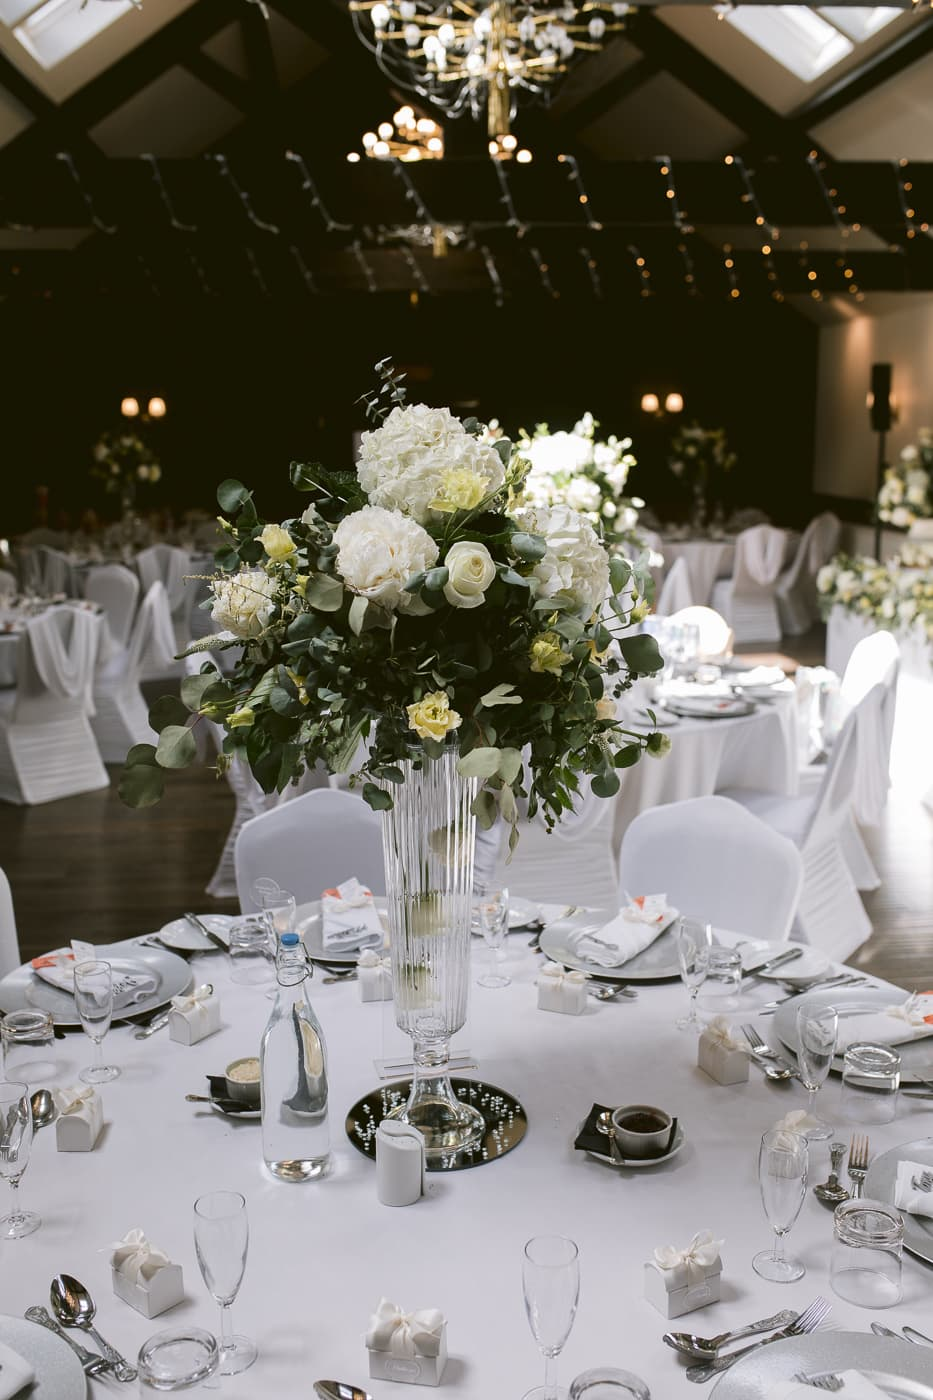 Bunch of Flowers on Decorative Tables For Evening Reception Photography